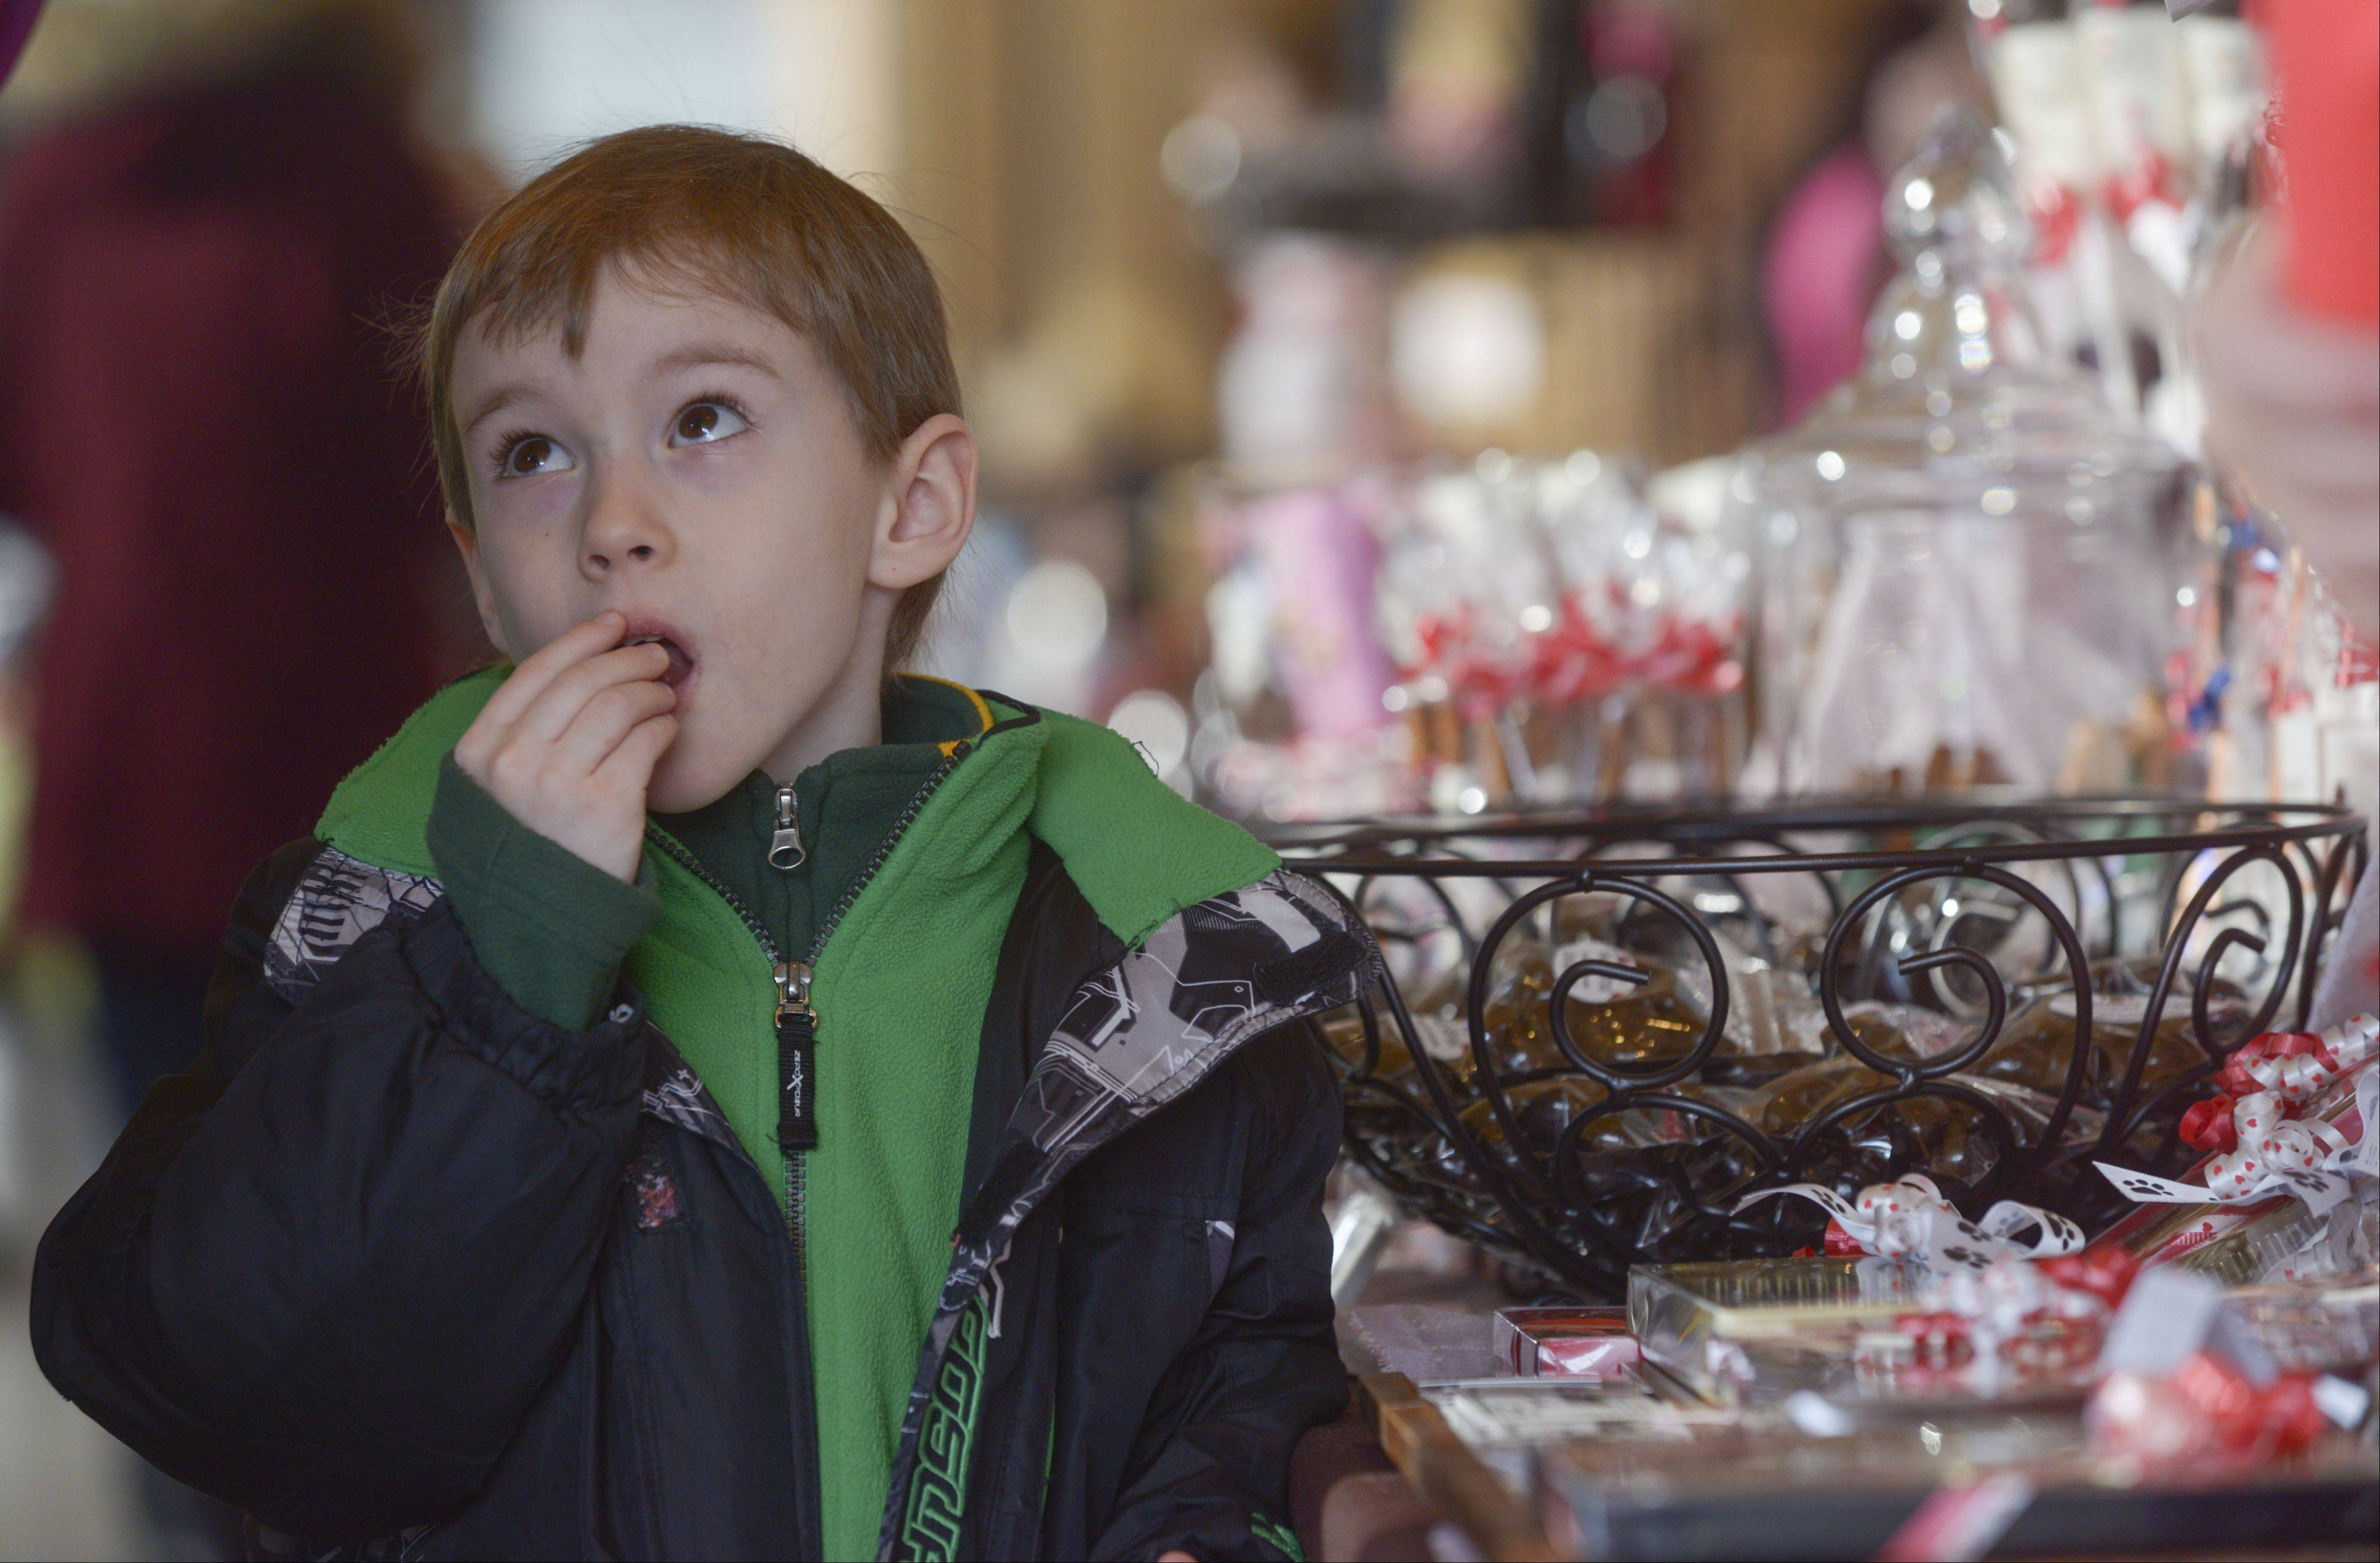 Colin Graveen, 5, of Bolingbrook, samples some chocolate at the Morton Arboretum's Chocolate Expo and Market.